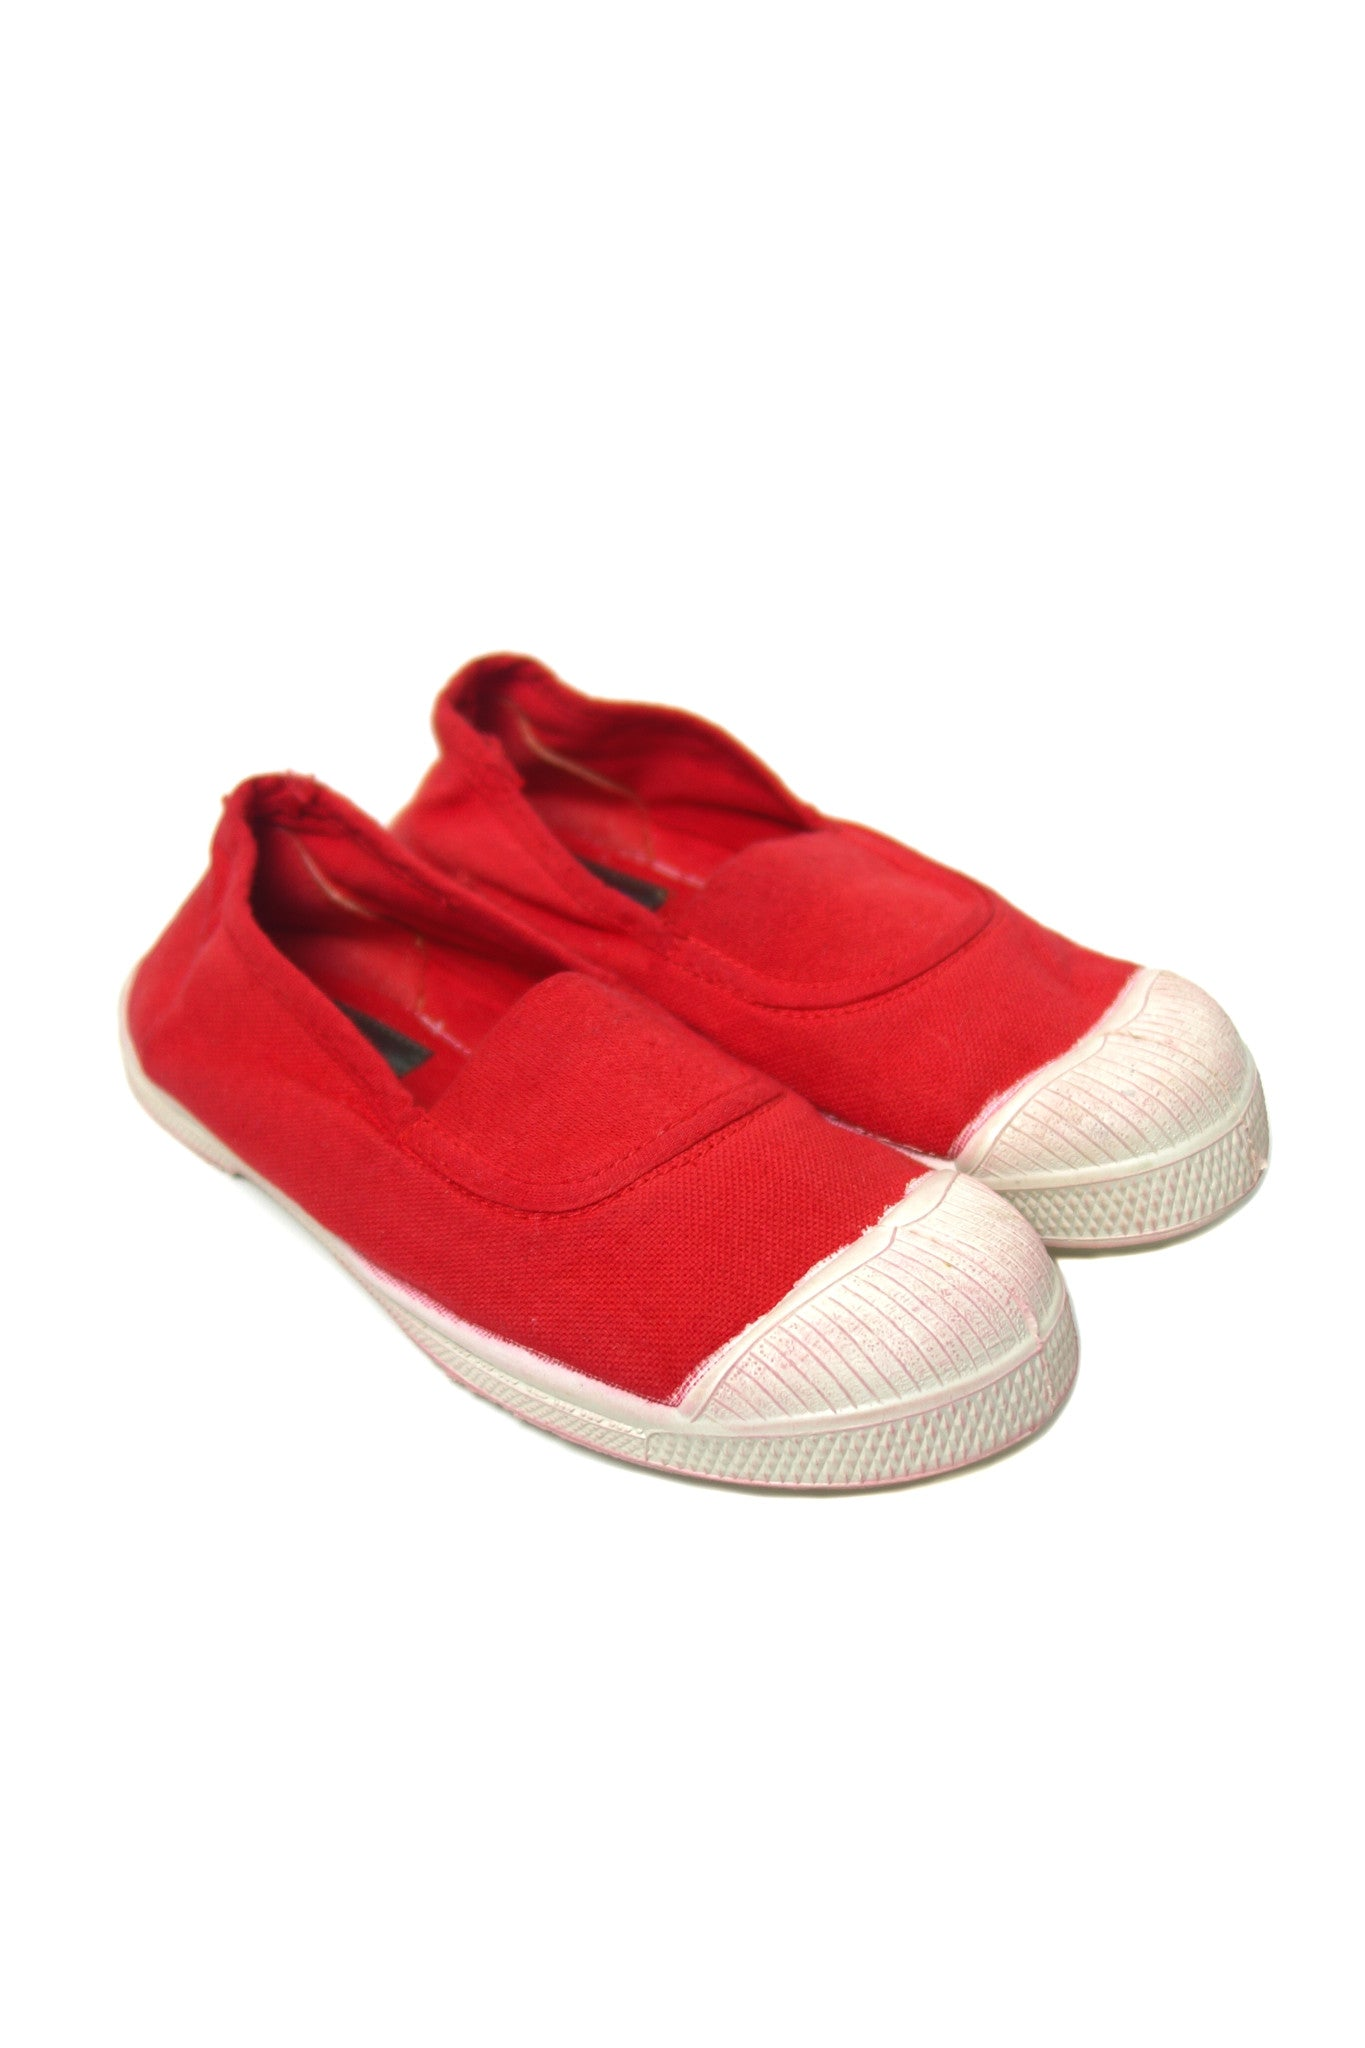 10002057 Bensimon Kids~Shoes 6T (EU 31) at Retykle